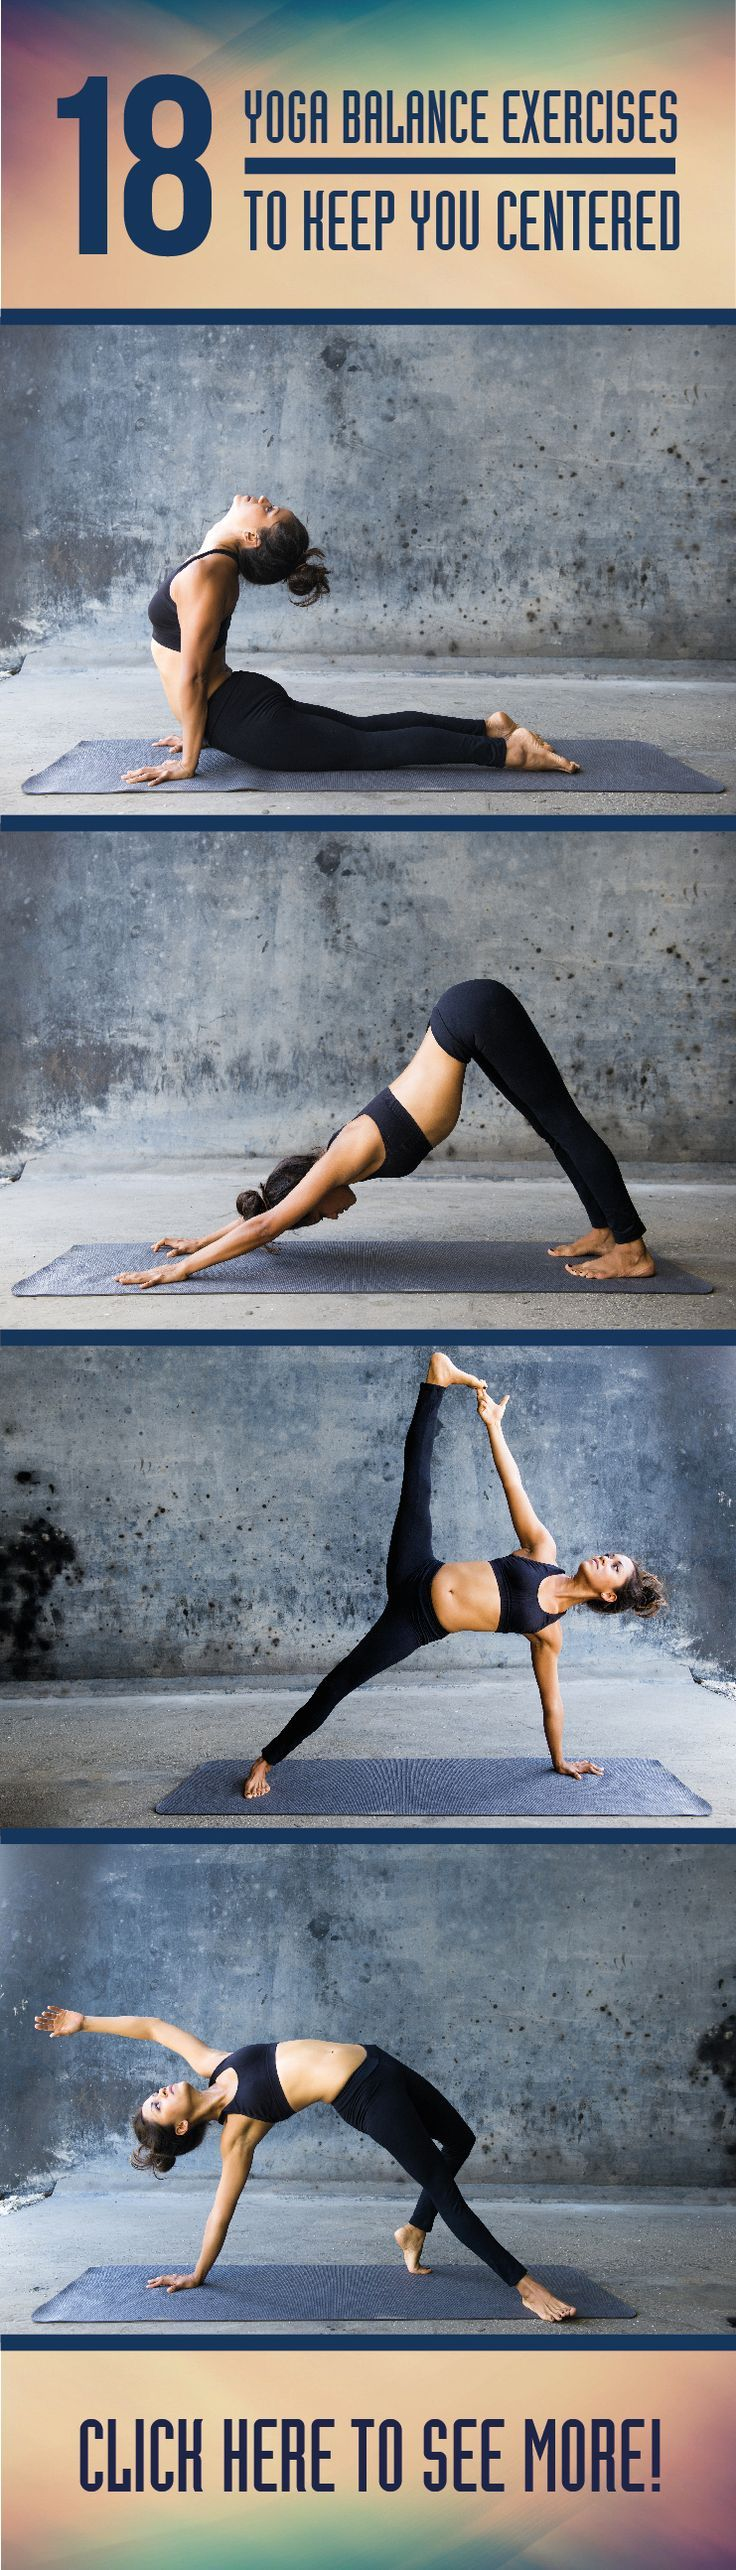 Check out these 18 yoga balance exercises to help you stay centered in and out of your practice.